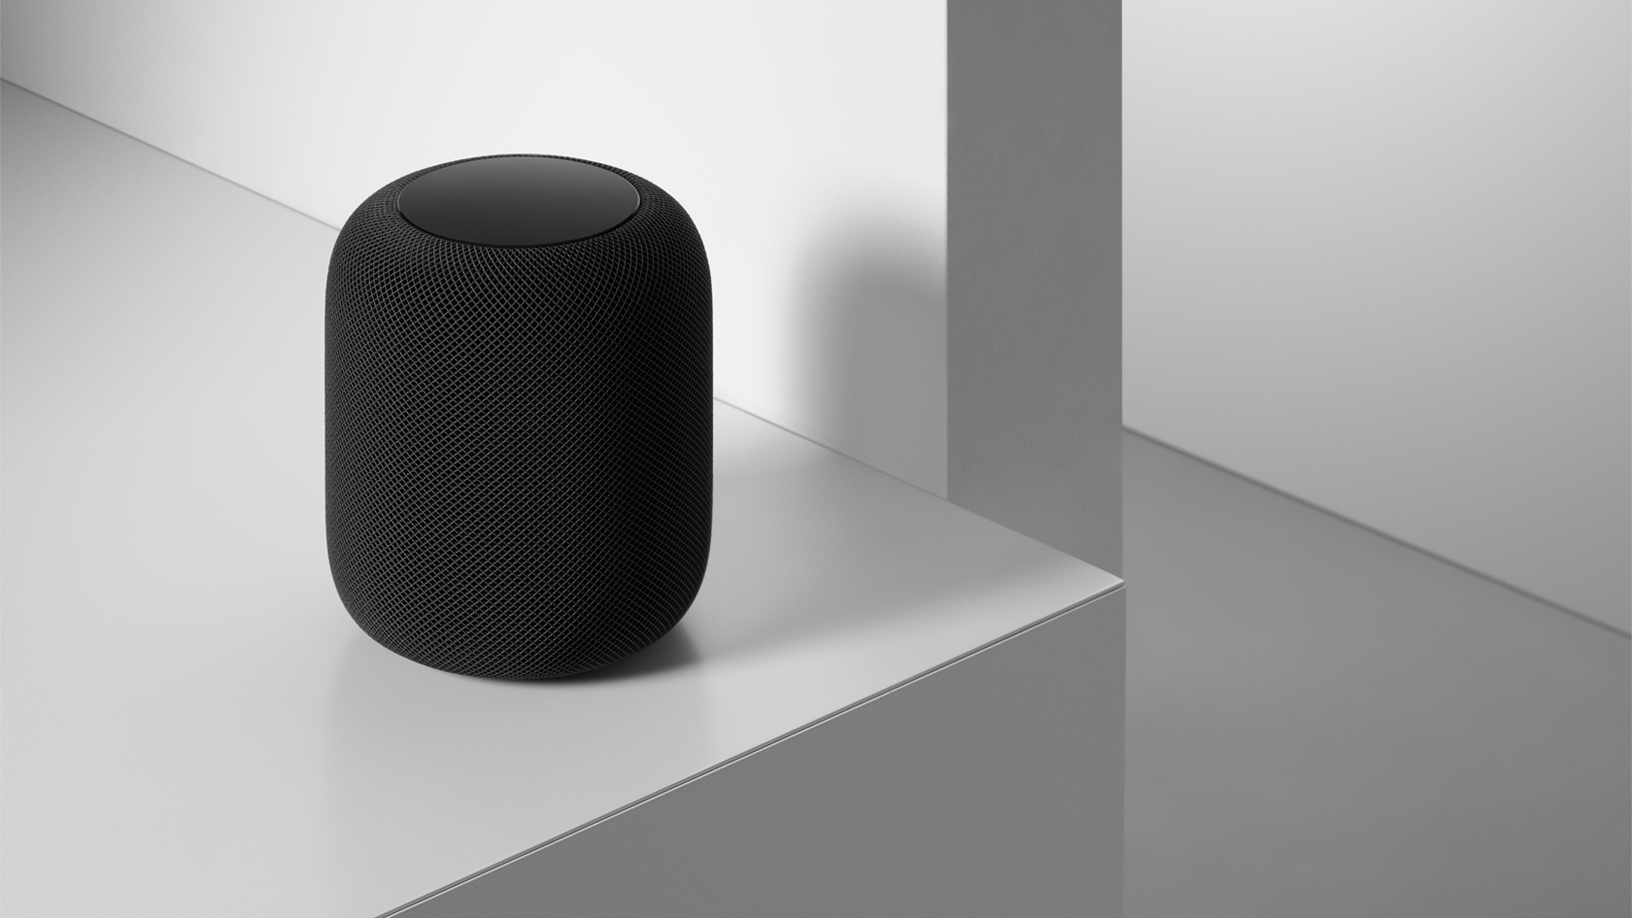 A space grey HomePod on a table.